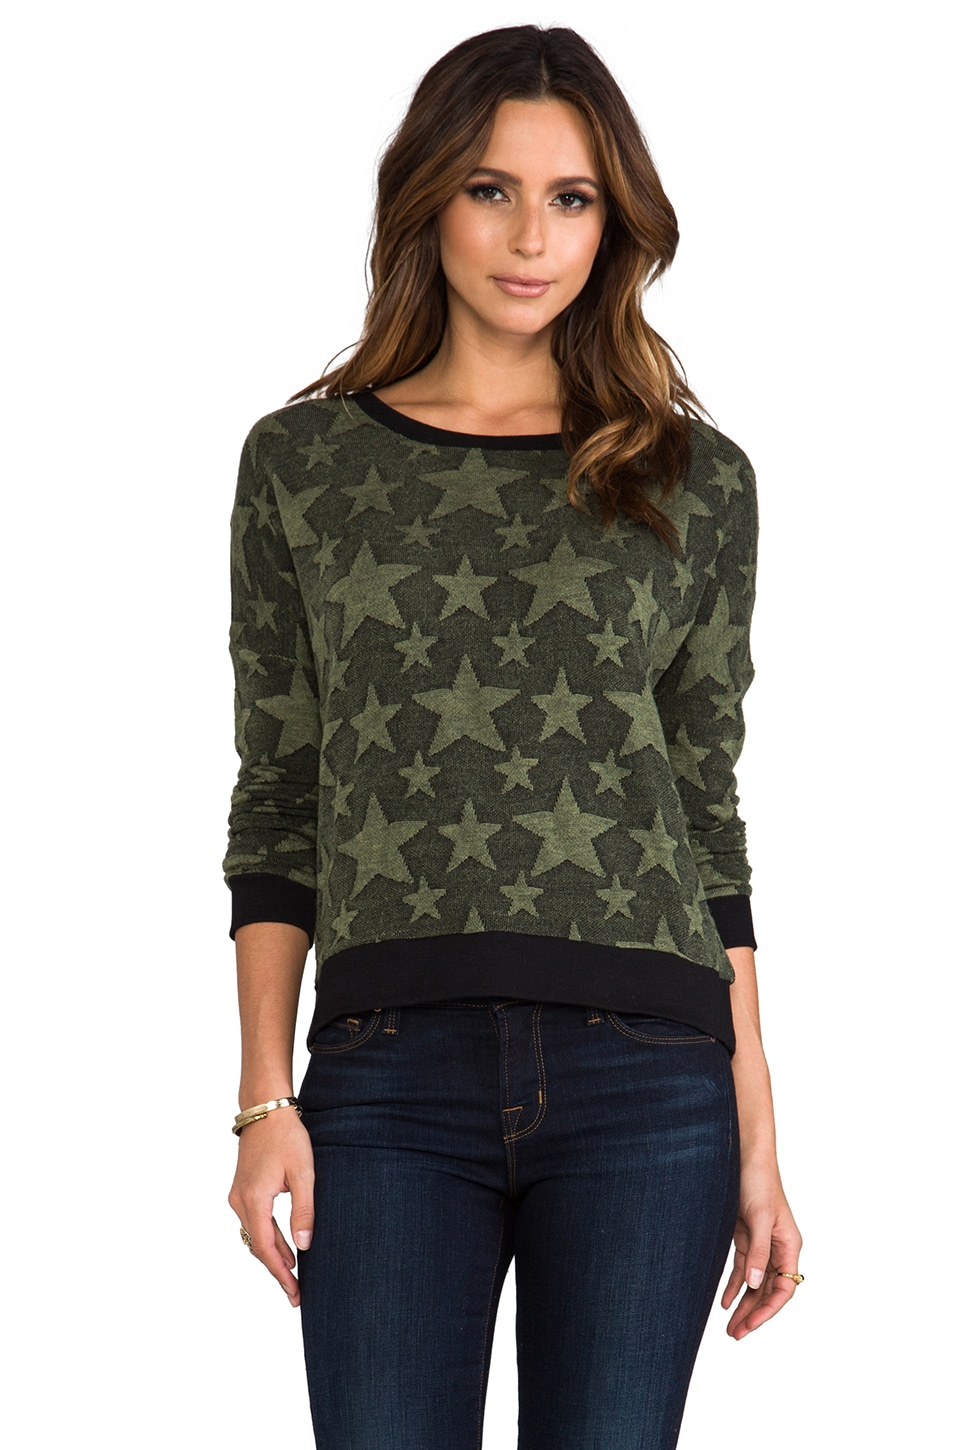 BB Dakota Washington Star Print Sweatshirt in Military Green